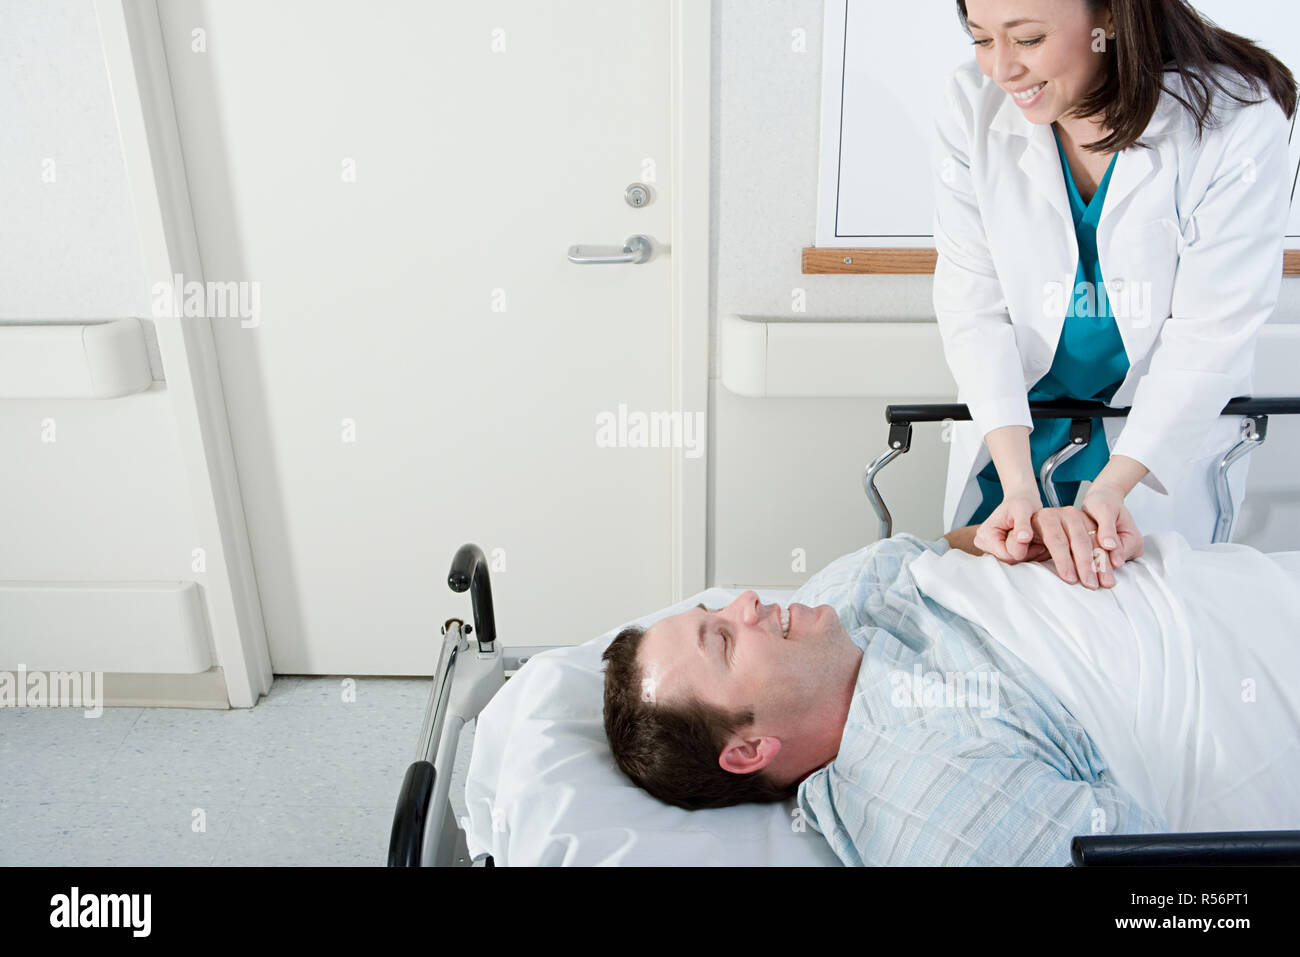 Doctor and patient in corridor - Stock Image